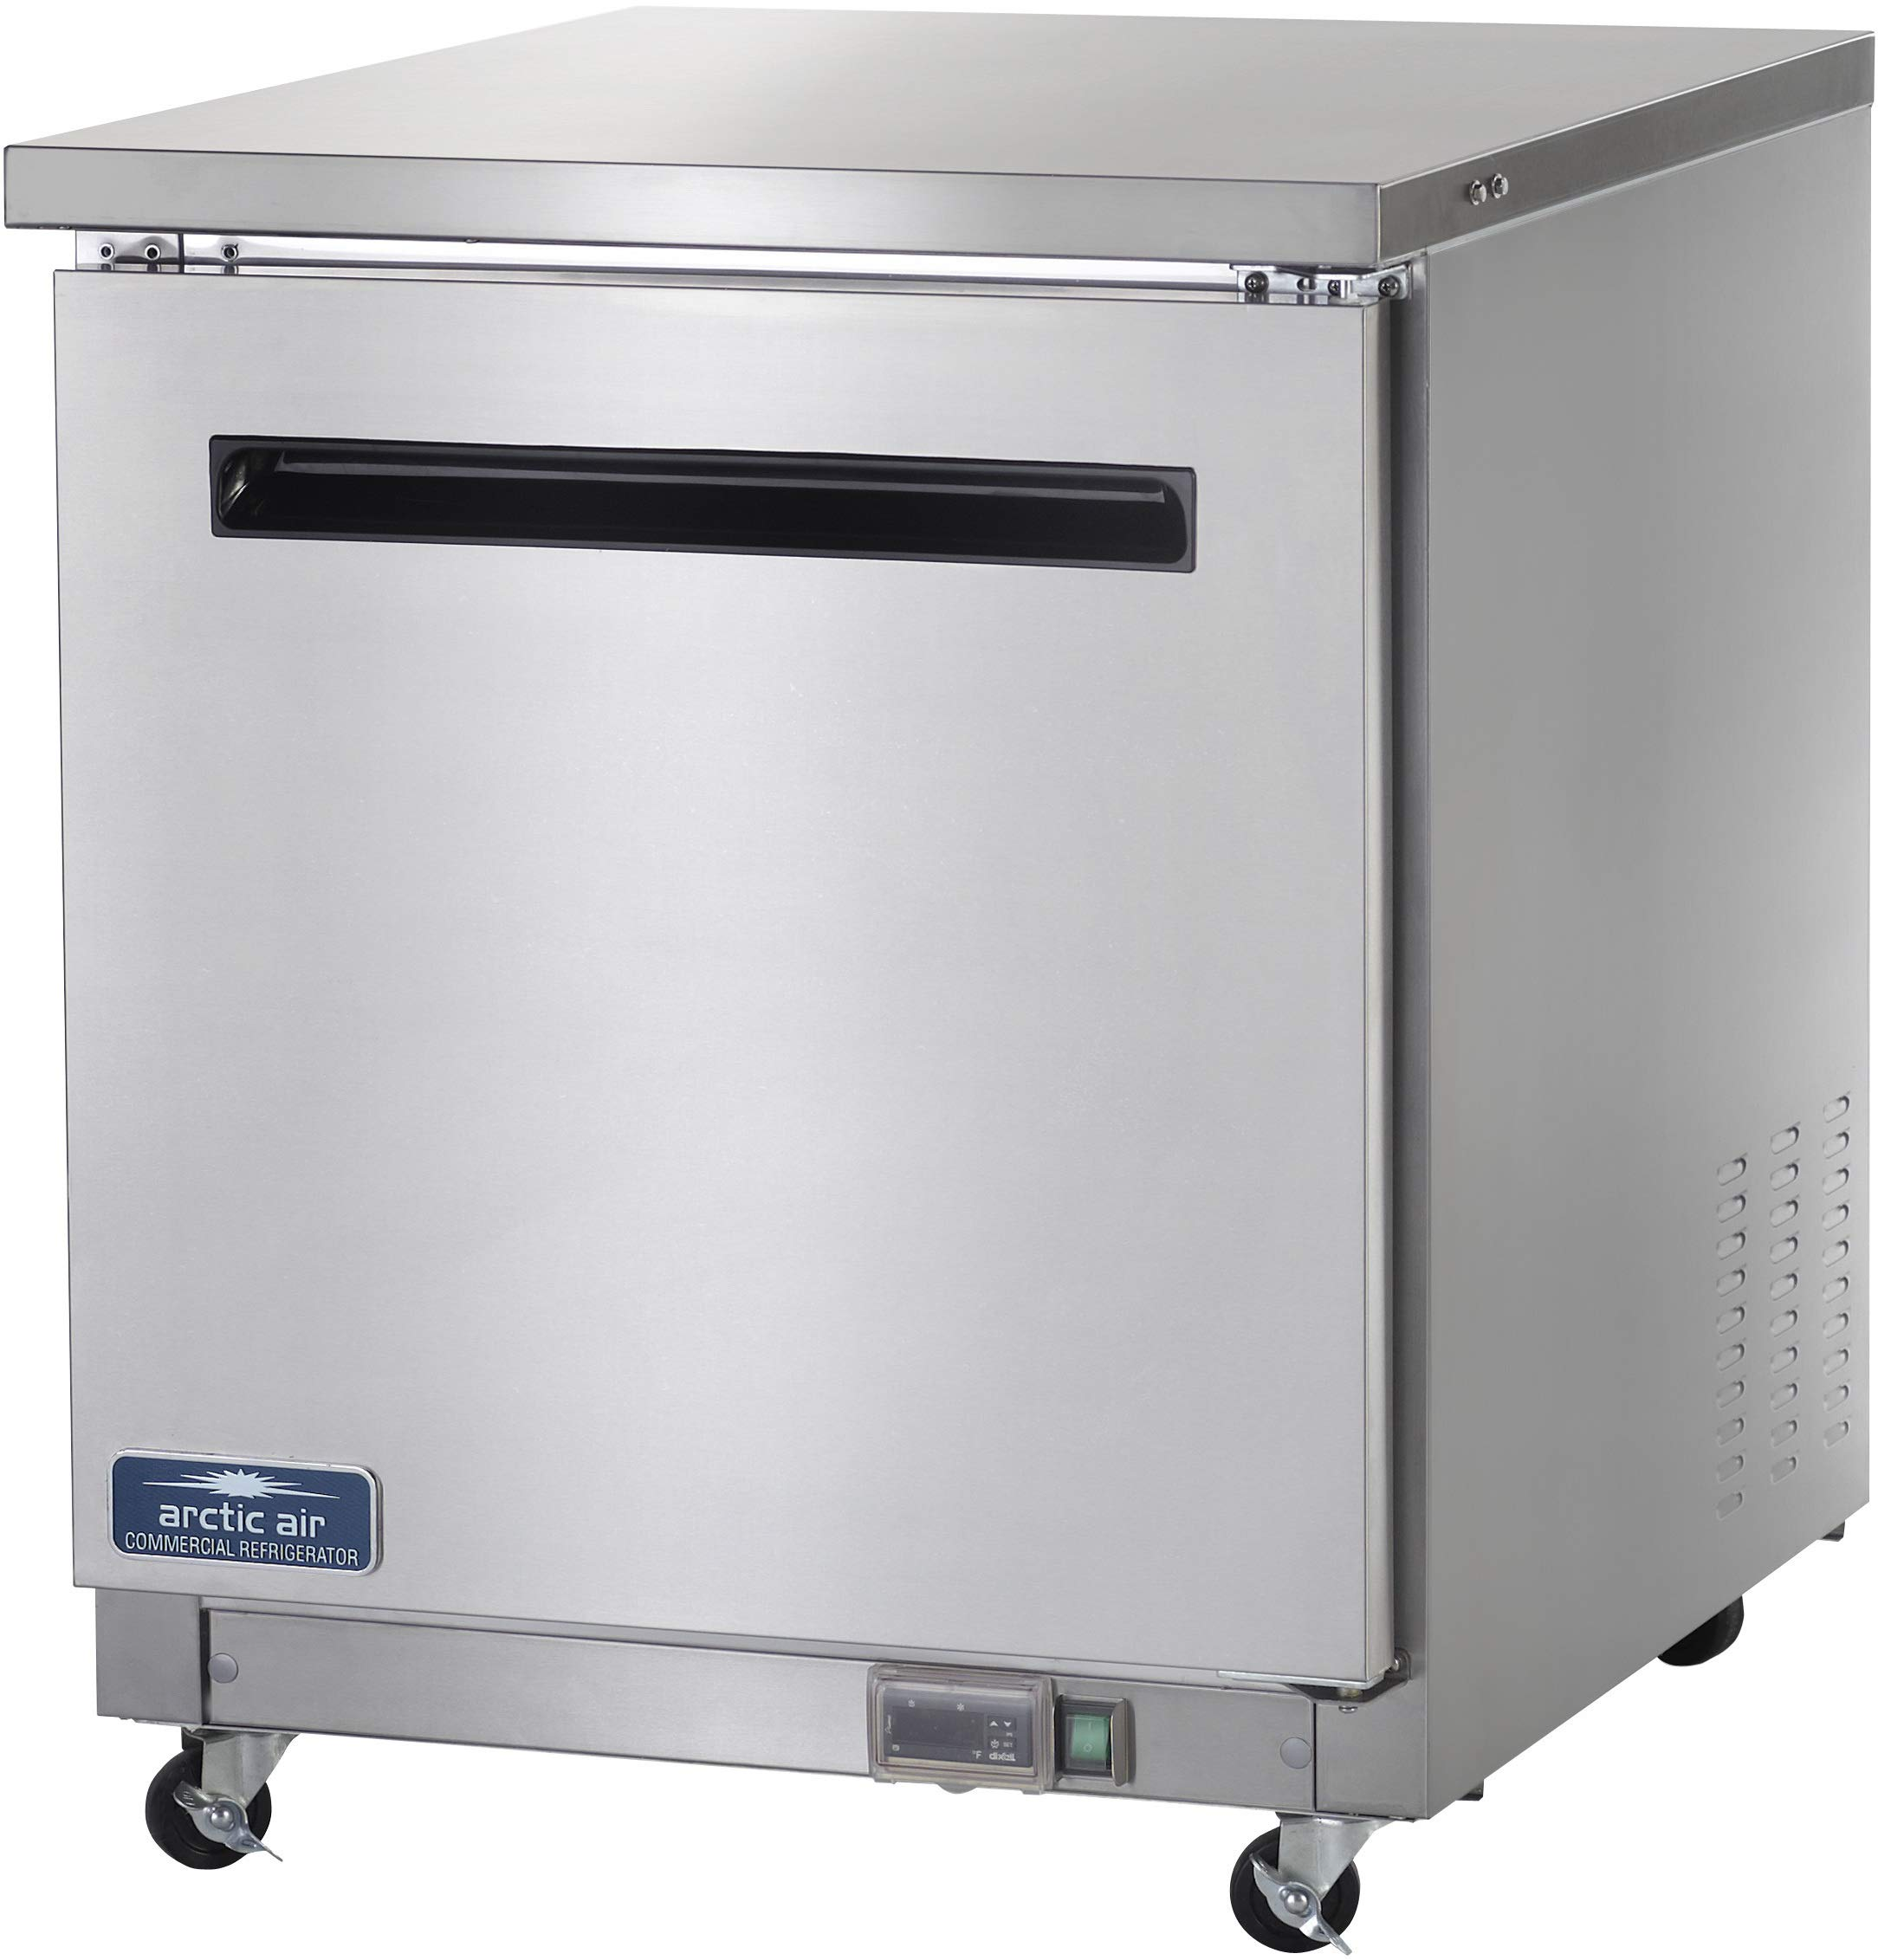 Arctic Air AUC27R 27'' Undercounter Refrigerator - 6.5 cu. ft, Stainless Steel by Arctic Air